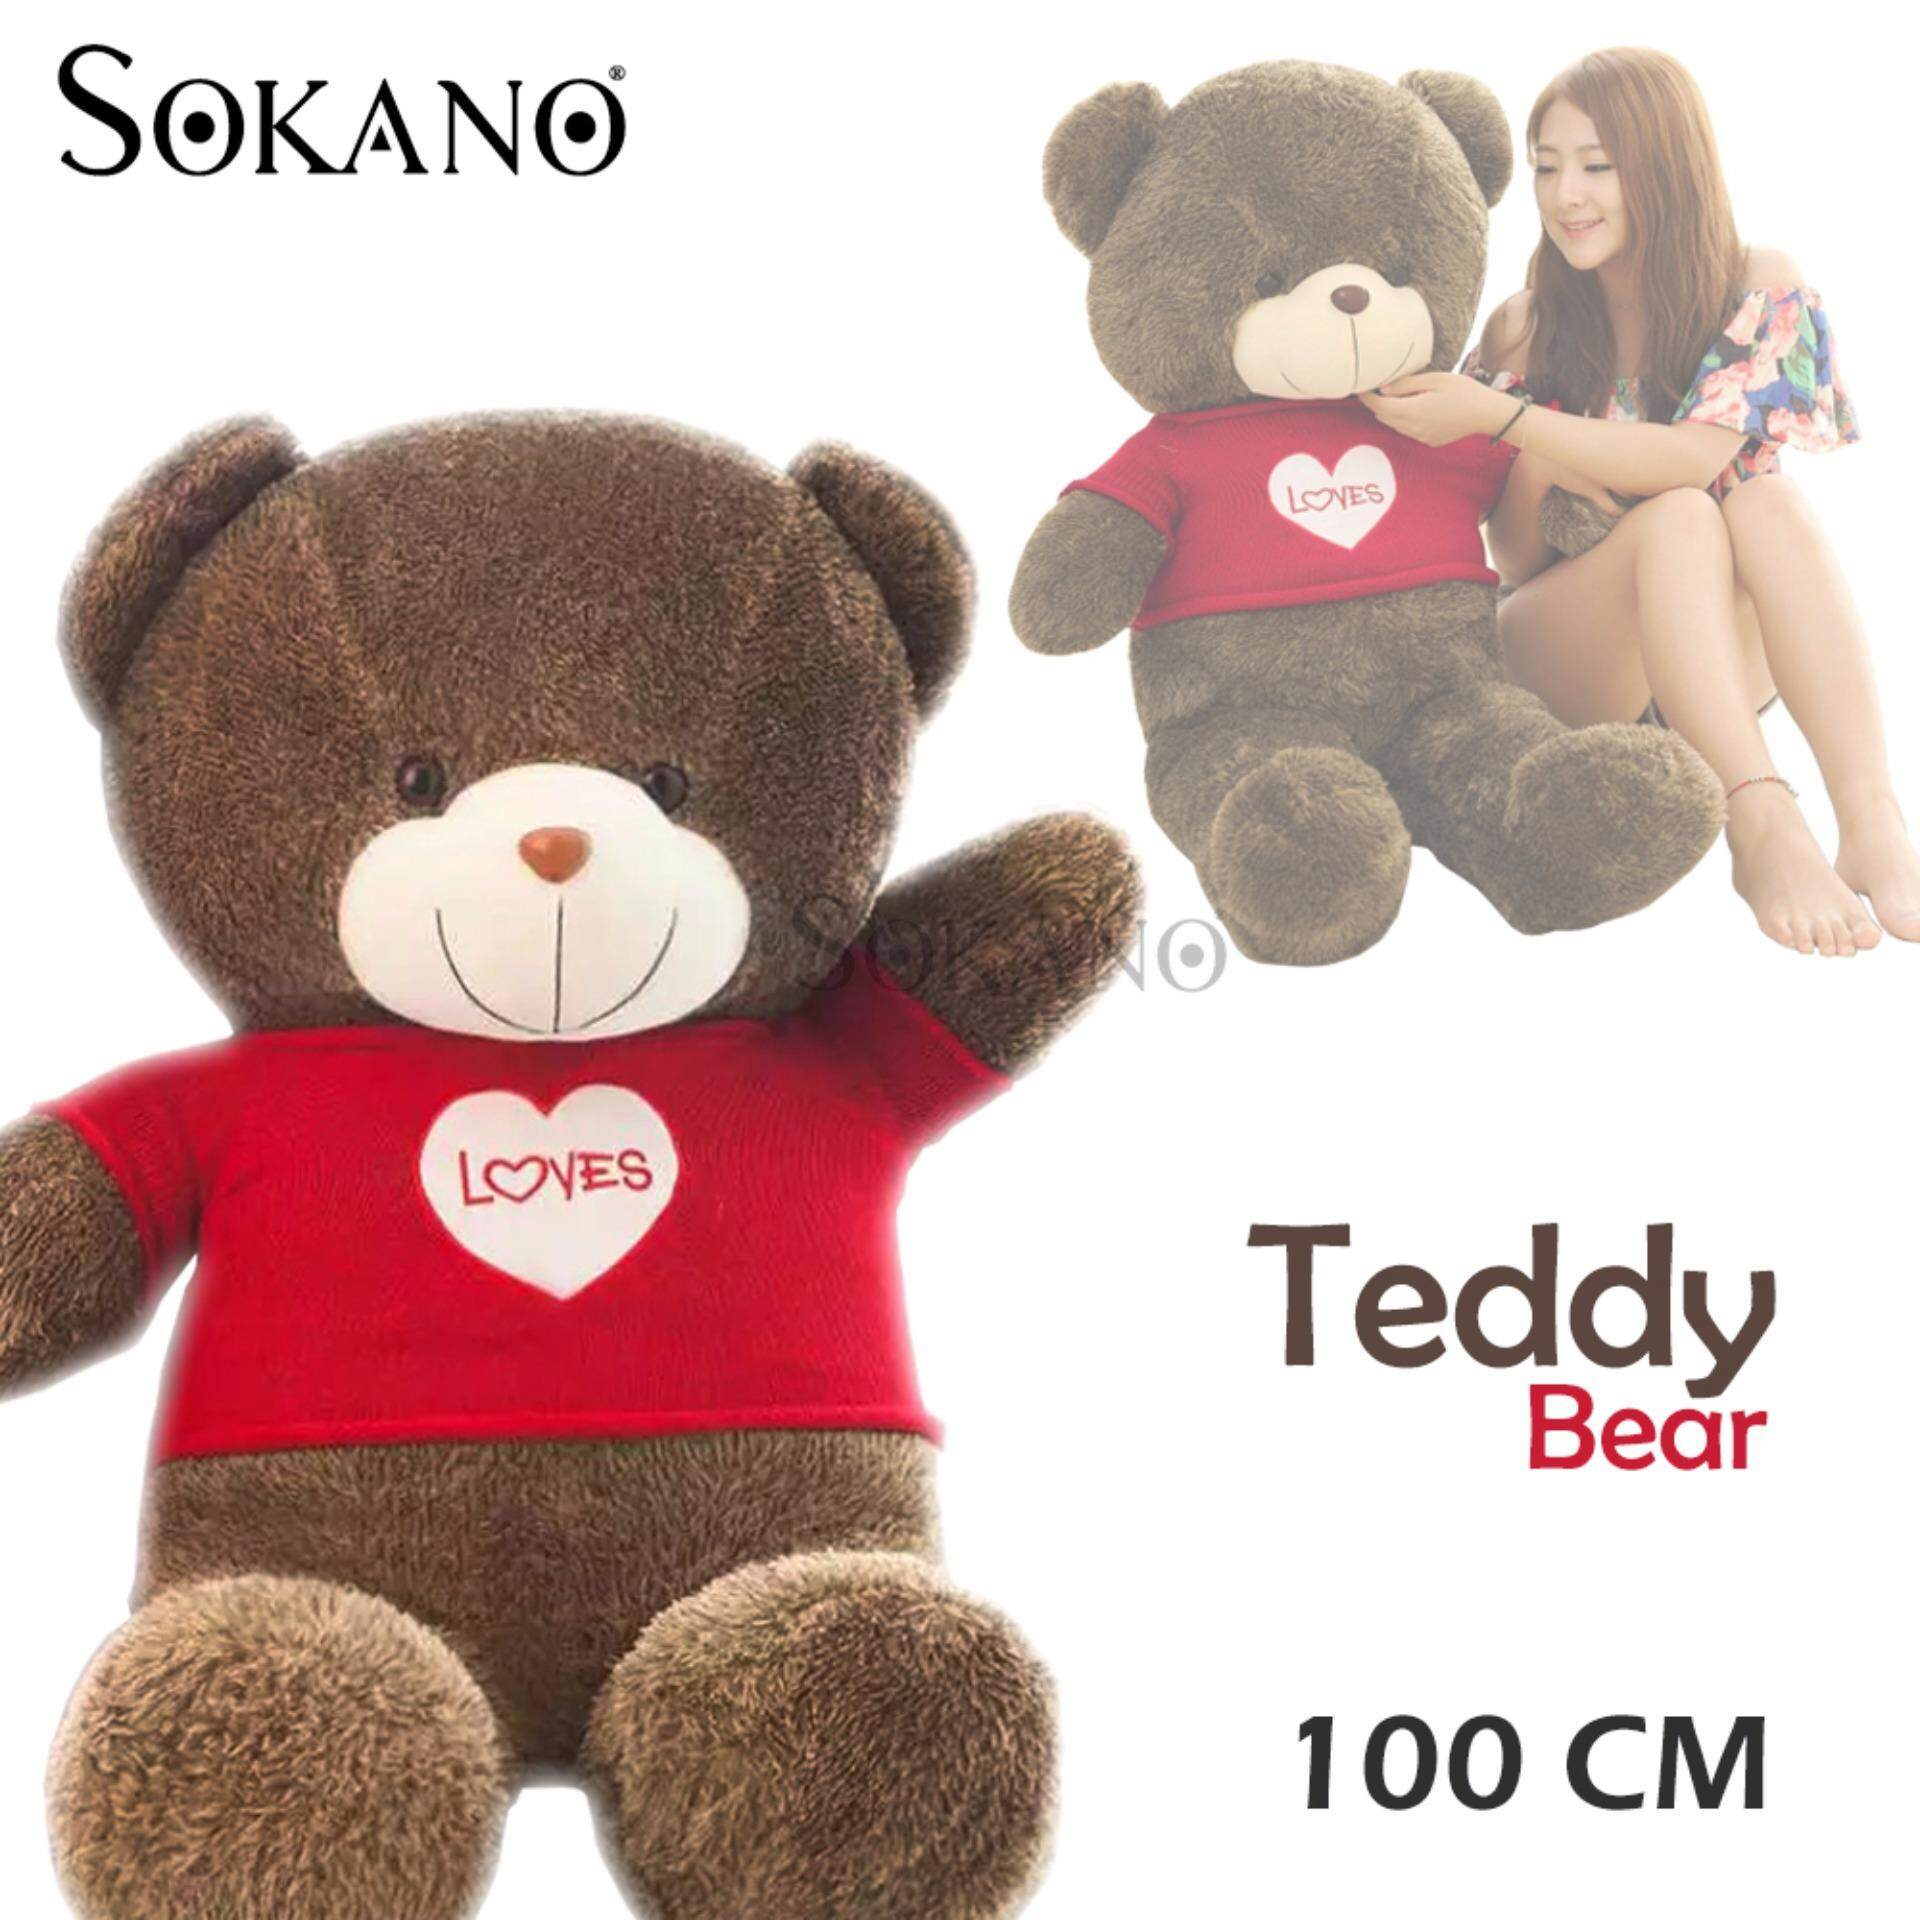 SOKANO 1 Meter Giant Bear with Love Red Shirt Best Christmas, Birthday and Valentine Gift